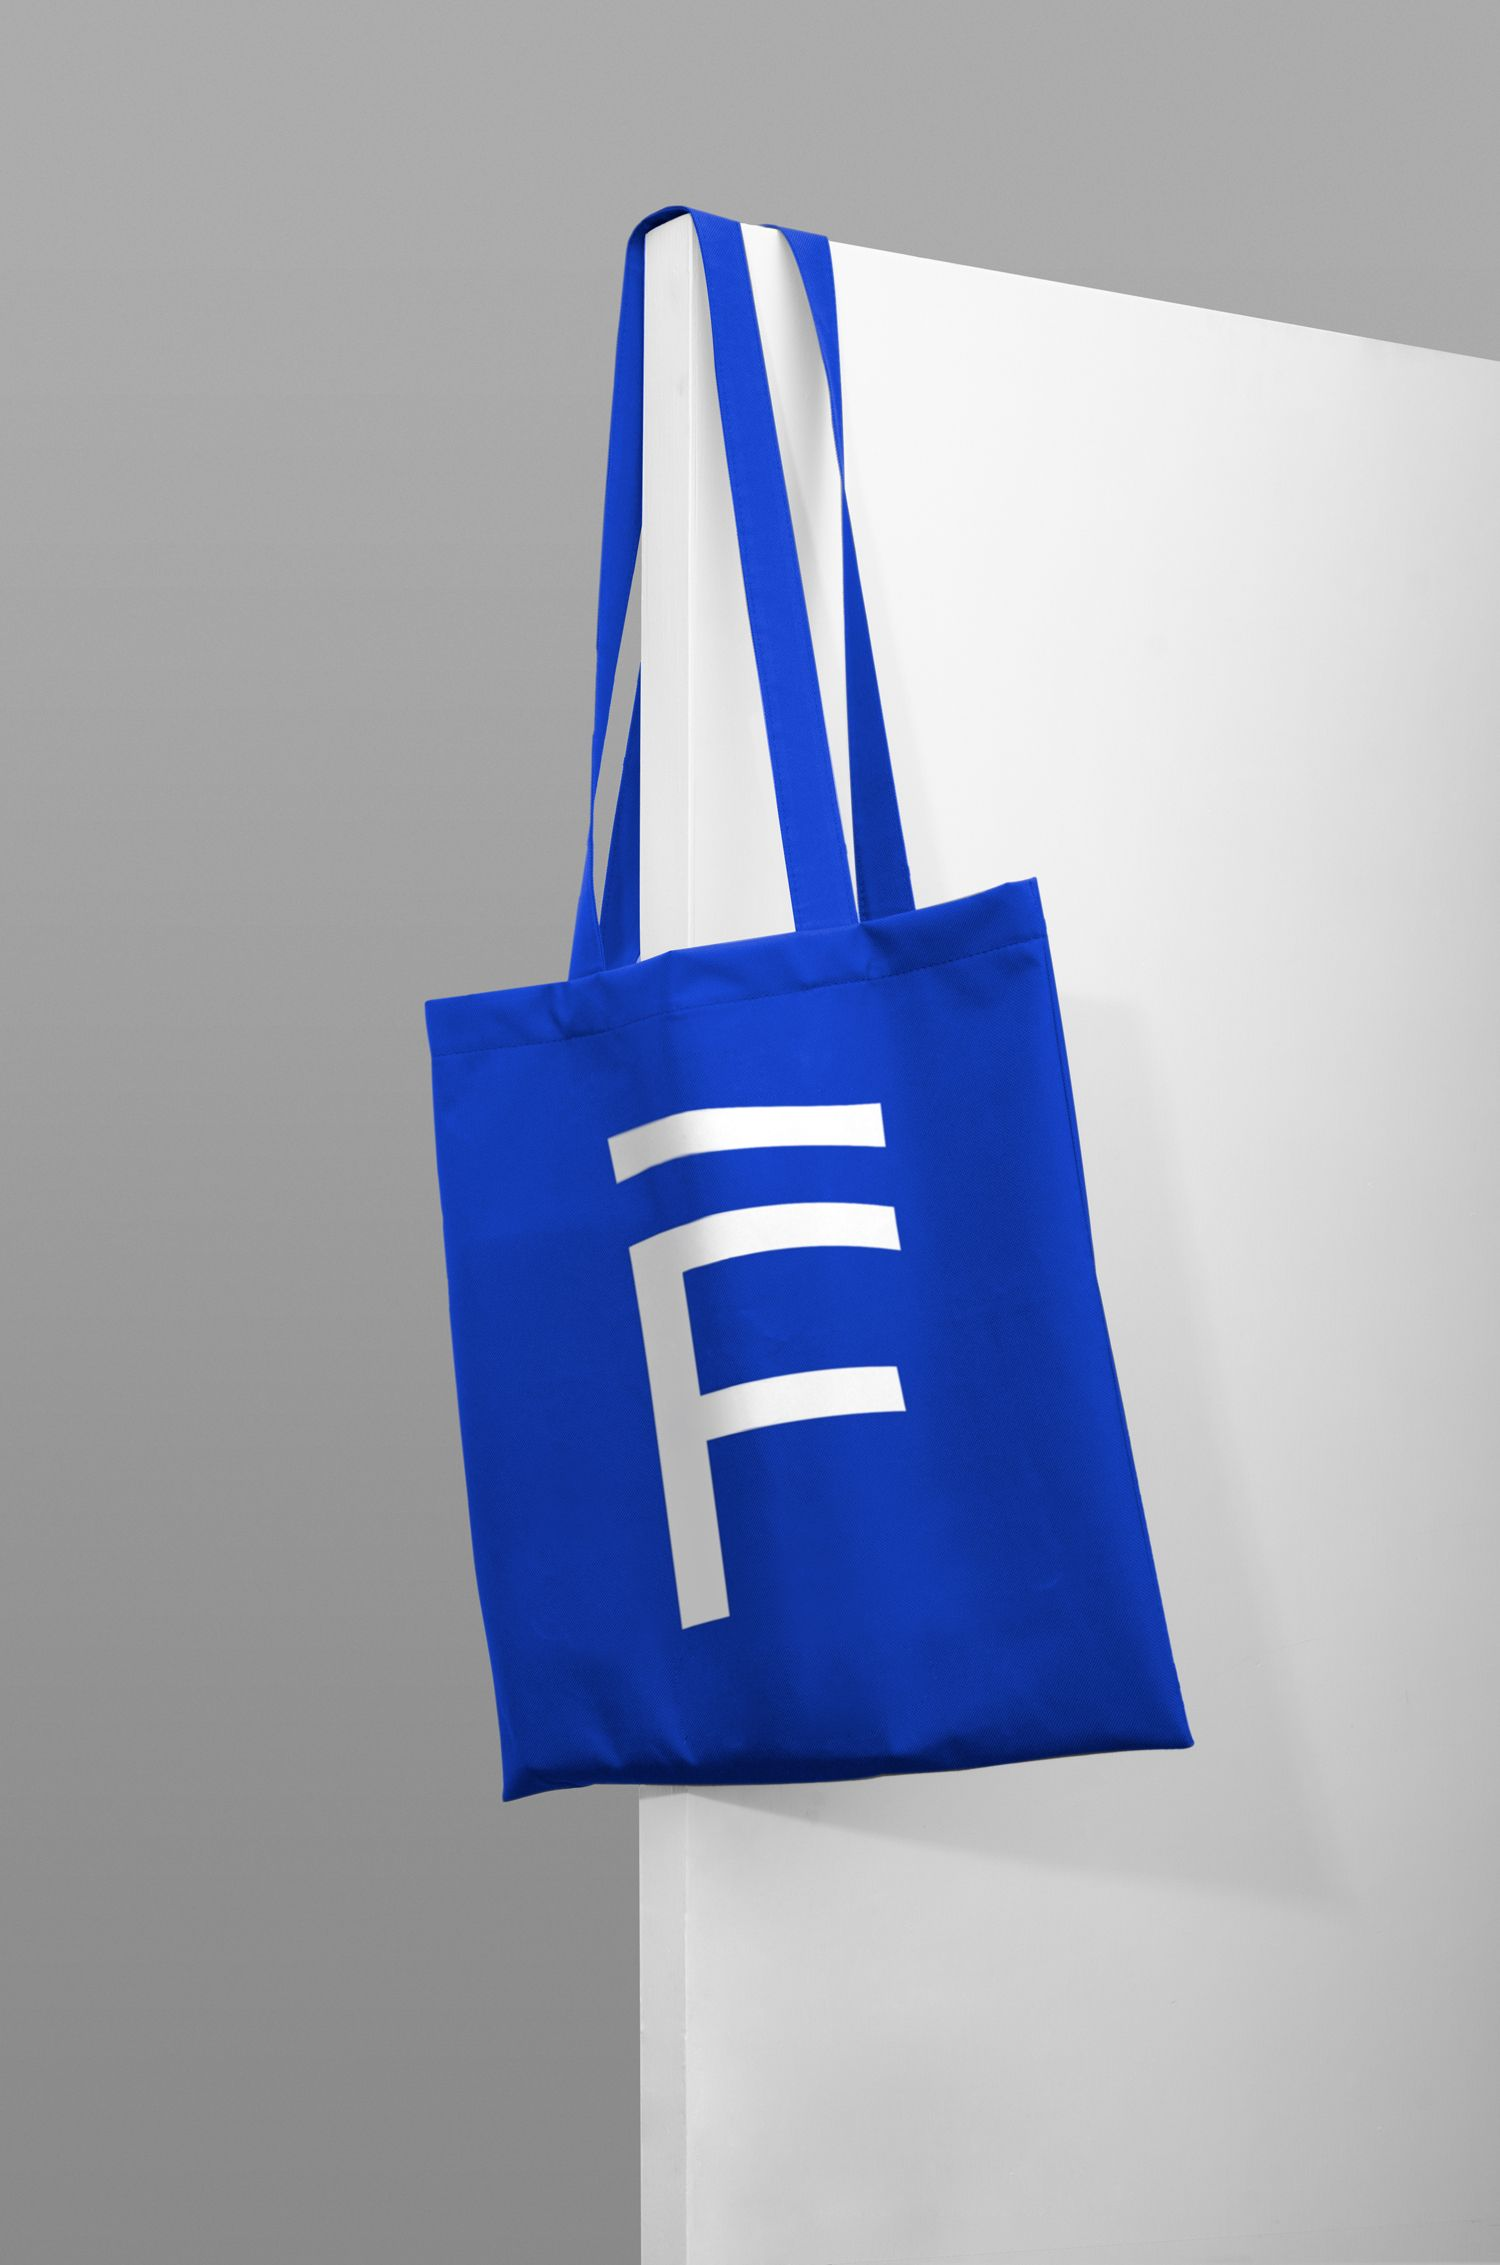 Brand Ideny And Tote Bag For Uk Based Fathom Architects By Dn Co